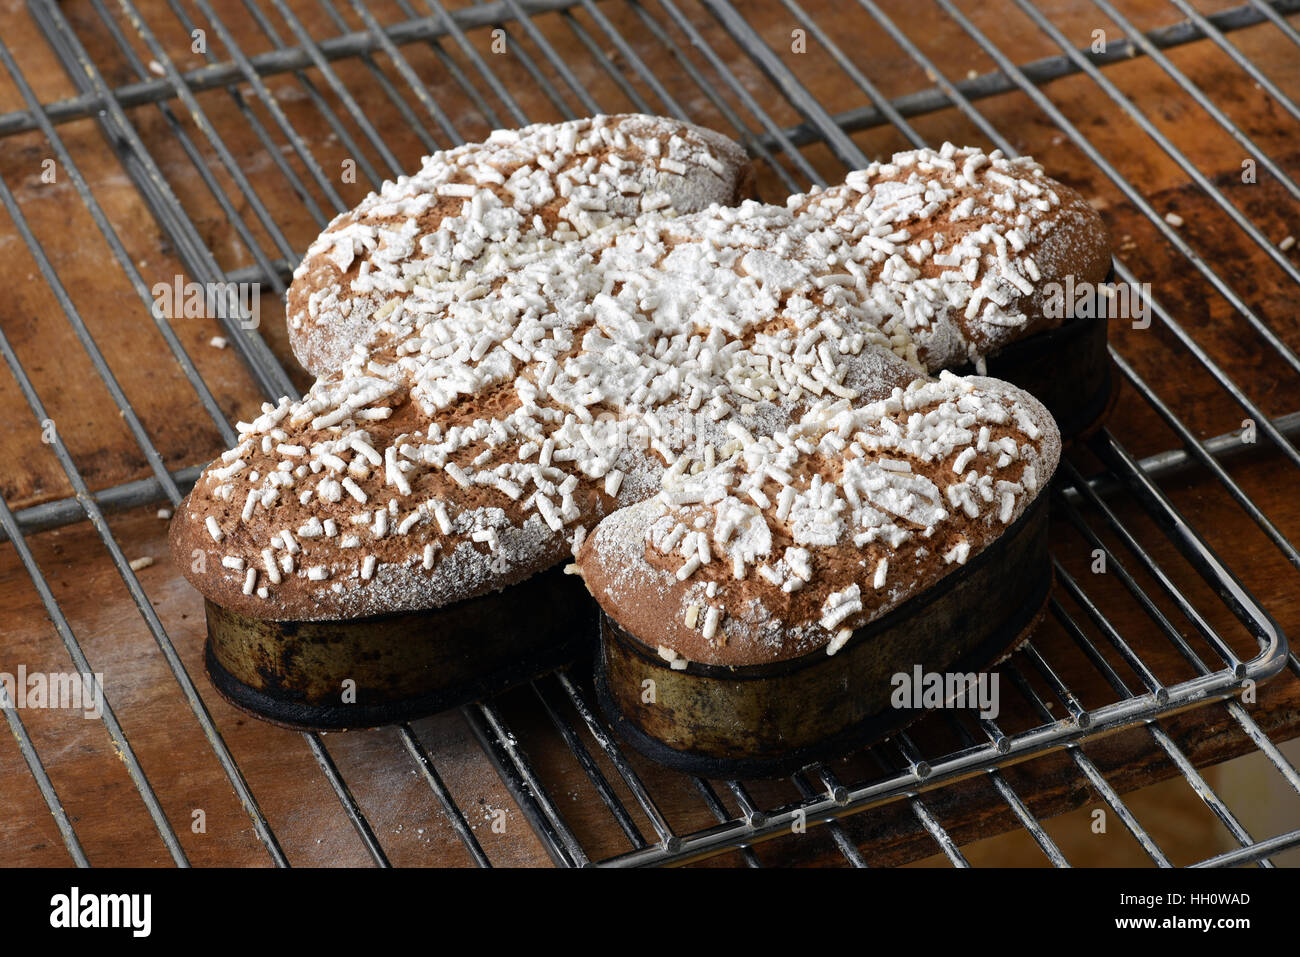 Colomba Or Italian Easter Dove Cake In The Shape Of A Flying Bird Cooling On Wire Rack Bakery